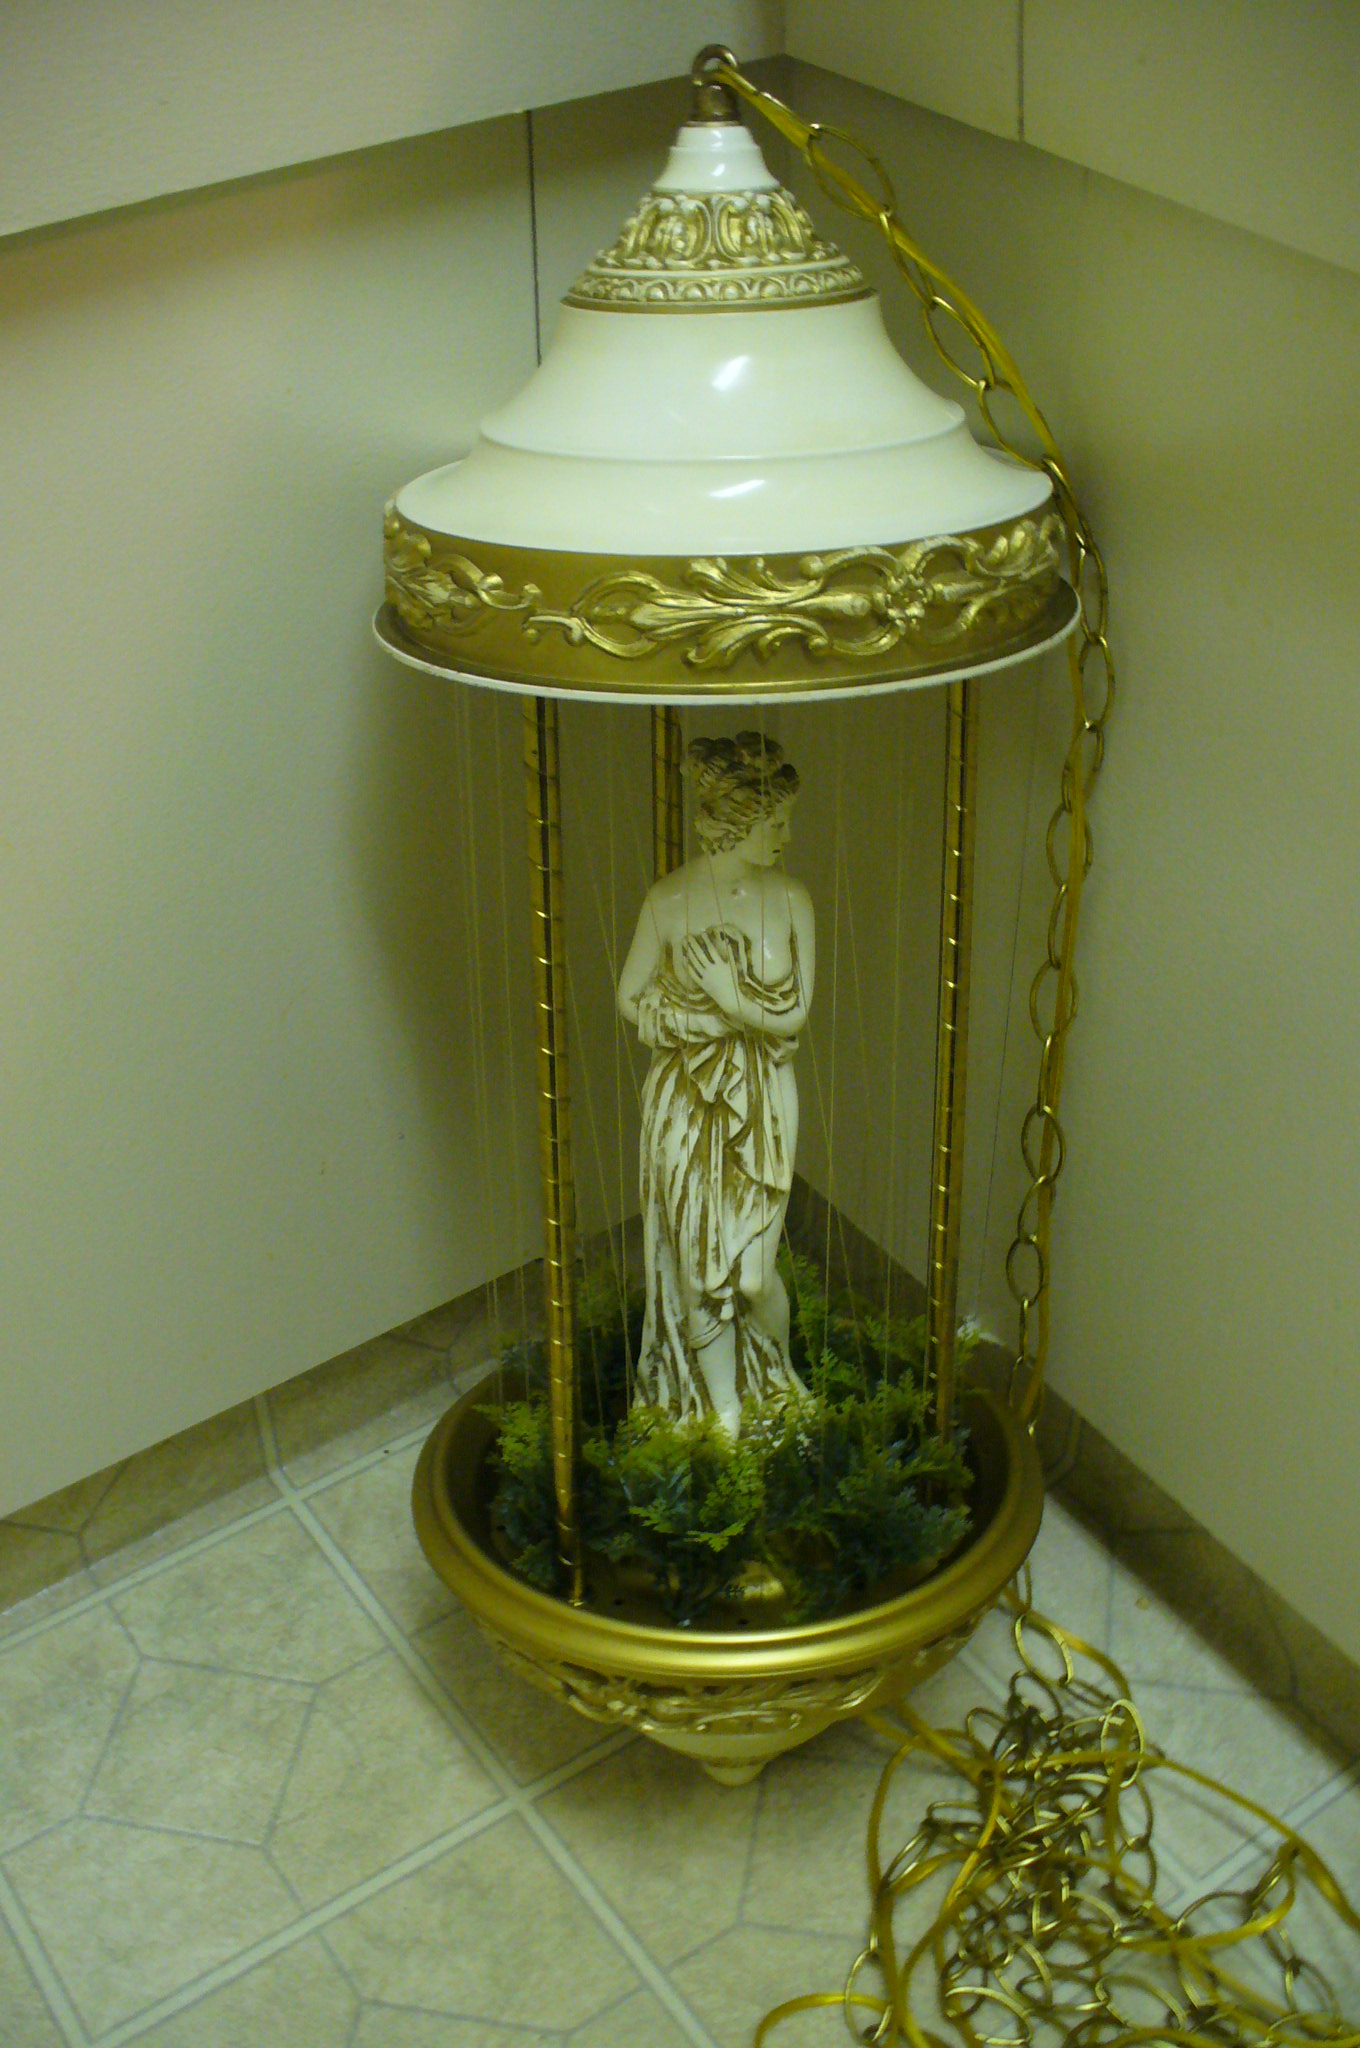 Rain Lamp, what kind of mineral oil? - The eBay Community